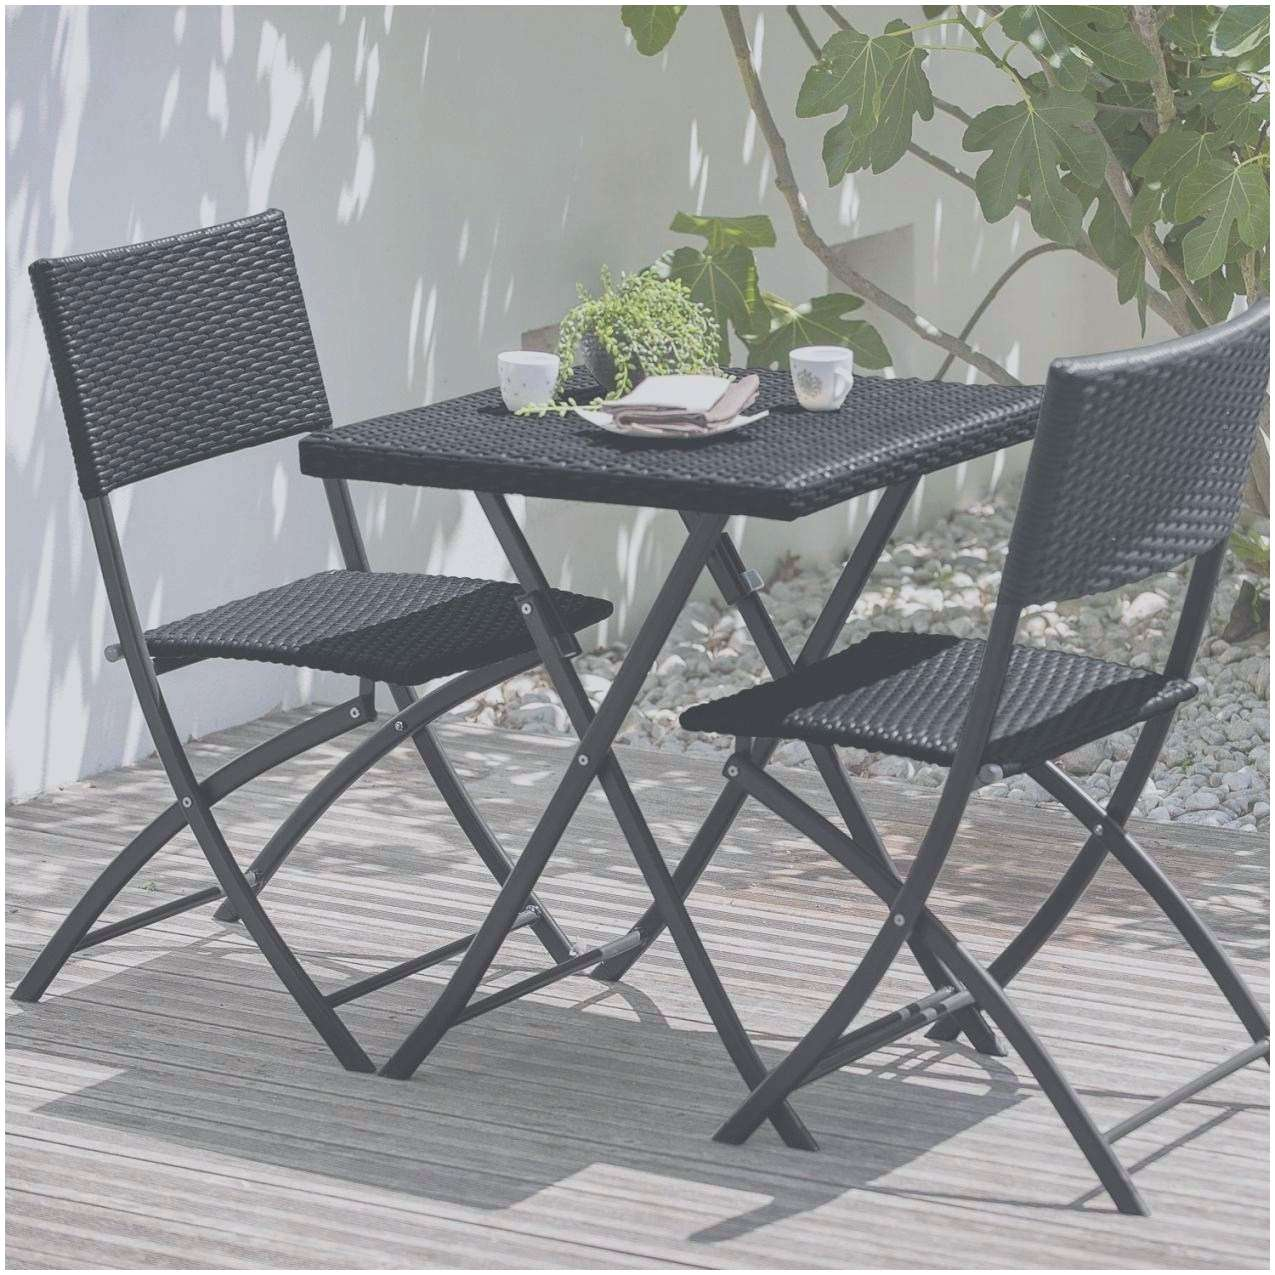 table pliable pas cher table pliante carrefour ideal table et chaise pliante chaise pliante carrefour canape carrefour 0d beau table pliante carrefour ideal table et chaise pliante chaise pl